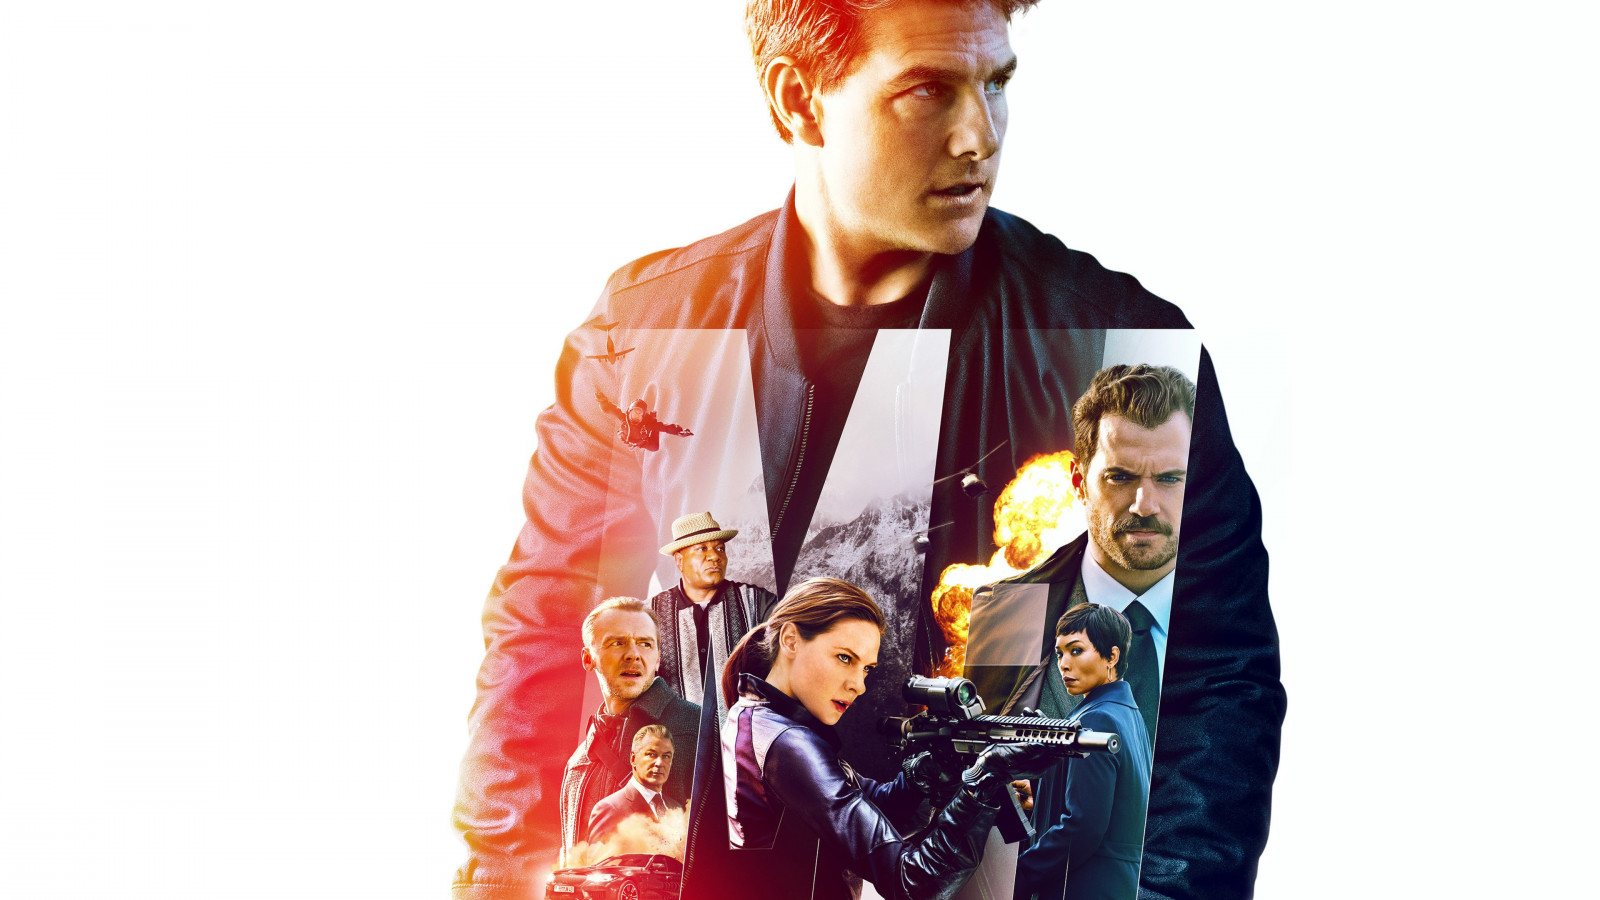 Mission: Impossible Fallout wallpaper 1600x900